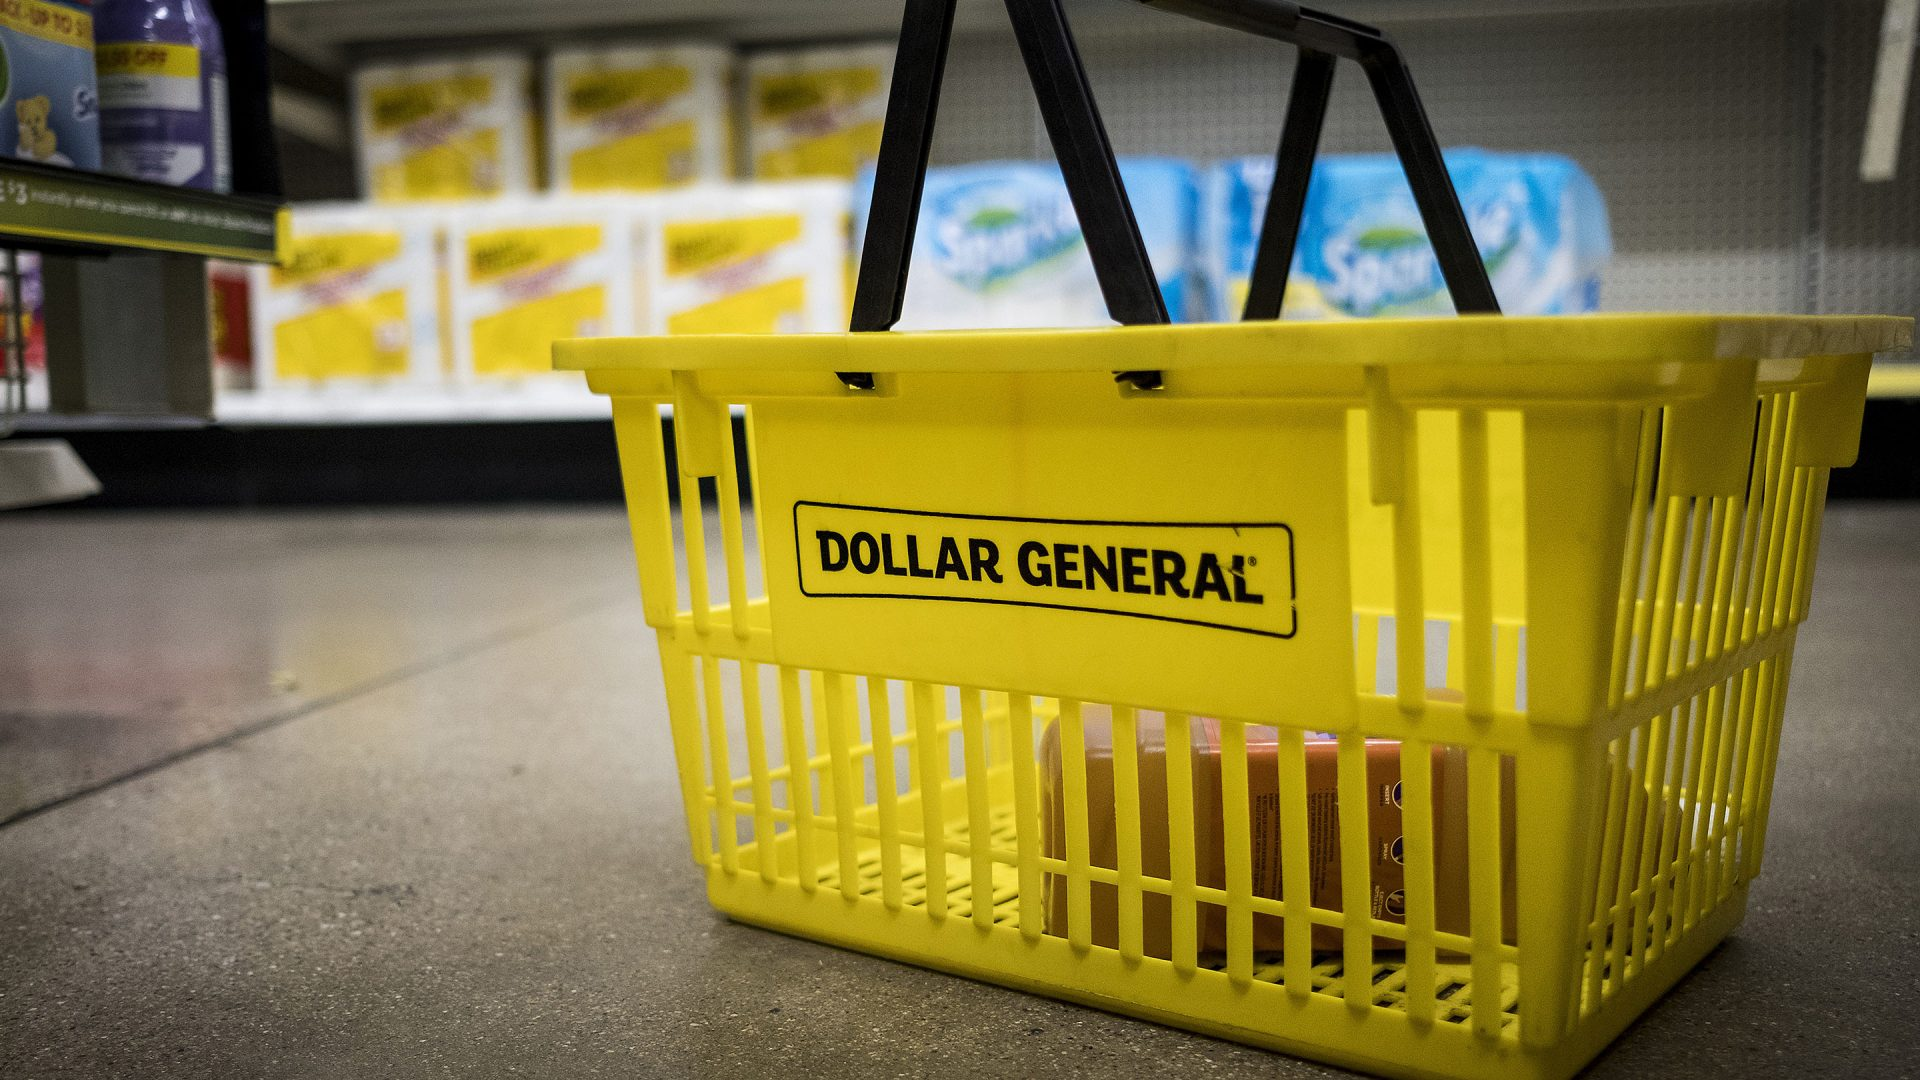 A shopping basket sits on the floor inside a Dollar General Corp. store in Chicago, Illinois, U.S., on Wednesday, Nov. 29, 2017. Dollar General is scheduled to release earnings figures on December 7. Photographer: Christopher Dilts/Bloomberg via Getty Images